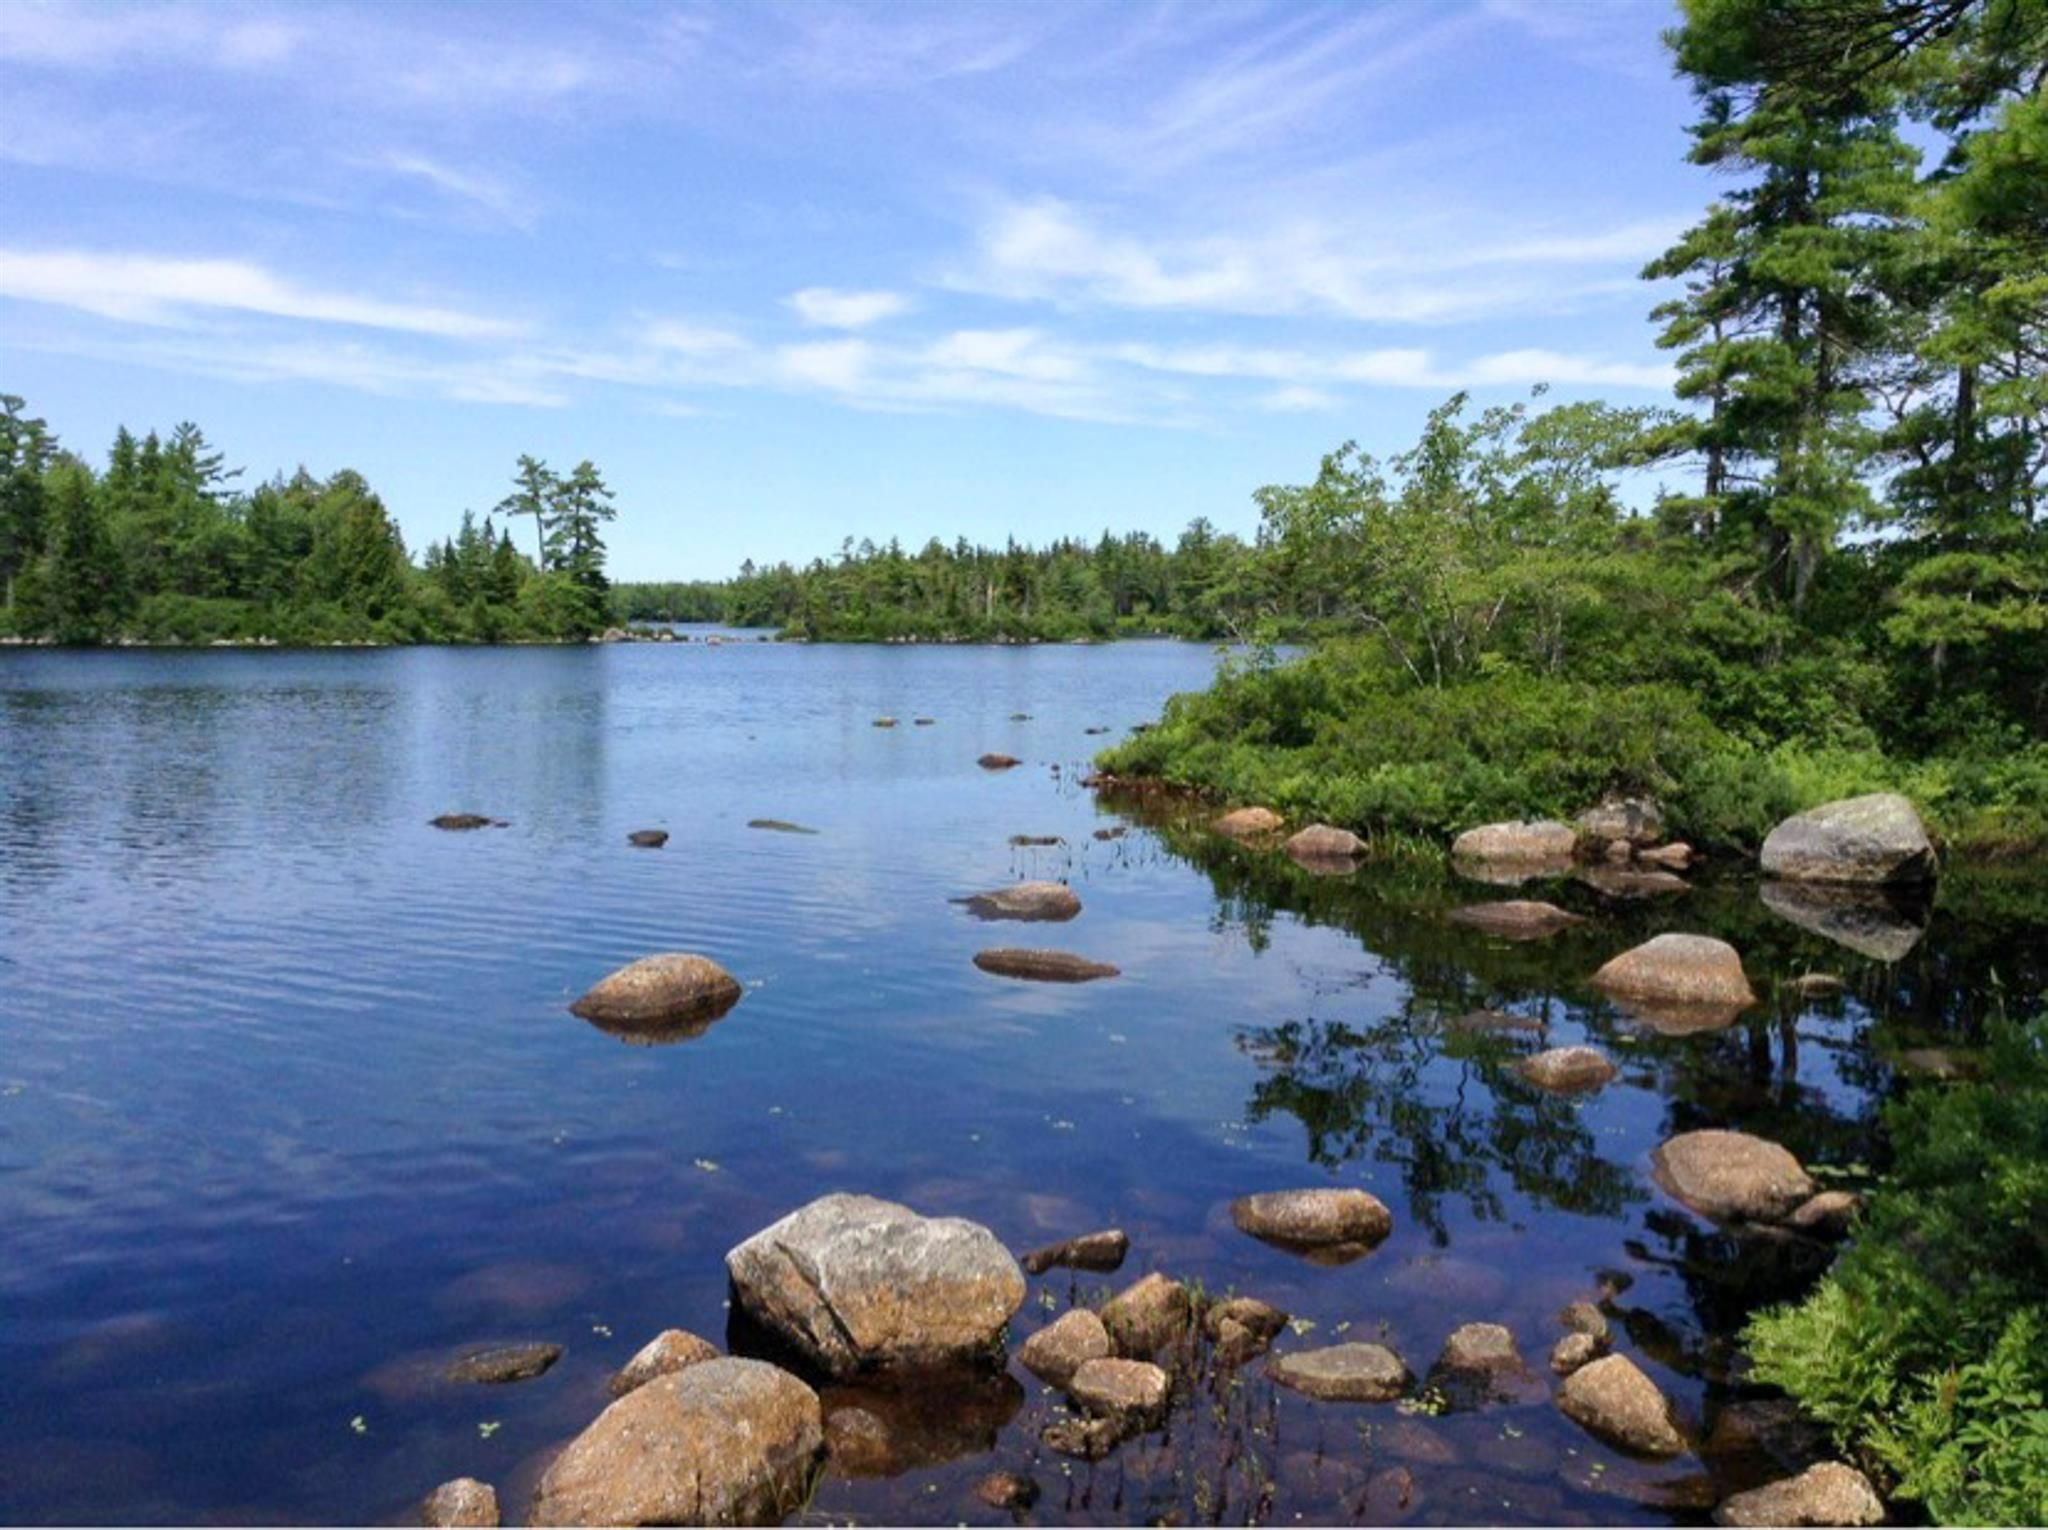 Main Photo: Lot 26 Alexander Avenue in Waterloo Lake: 400-Annapolis County Vacant Land for sale (Annapolis Valley)  : MLS®# 202104820